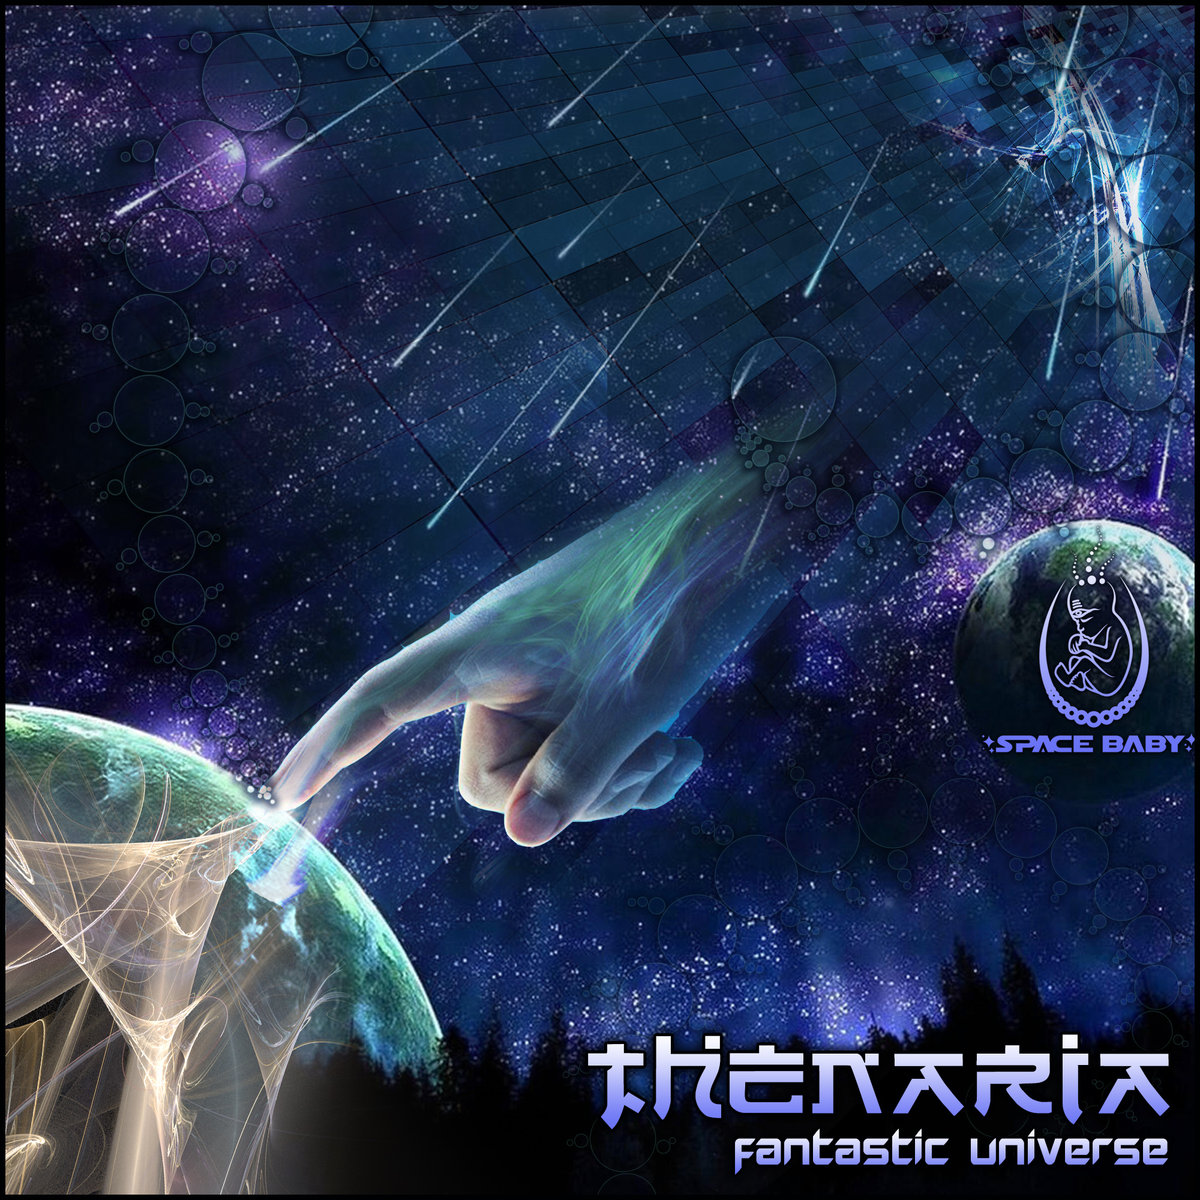 Thenaria - Fantastic Universe (artwork)